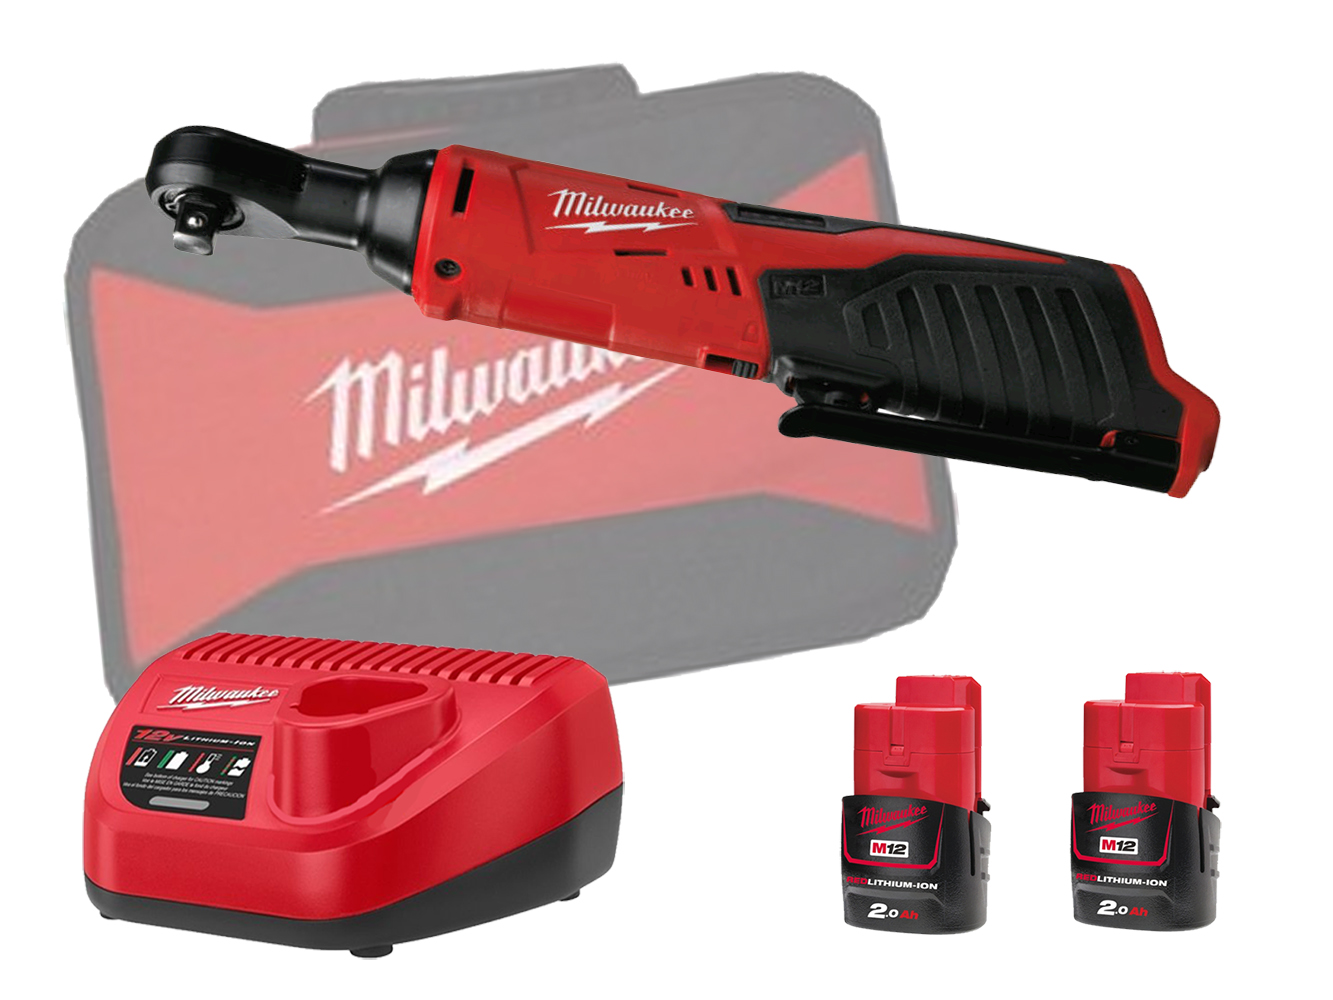 Milwaukee M12IR38 12V 3/8in Angled Impact Ratchet & 1/4in Adapter - 2.0Ah Pack